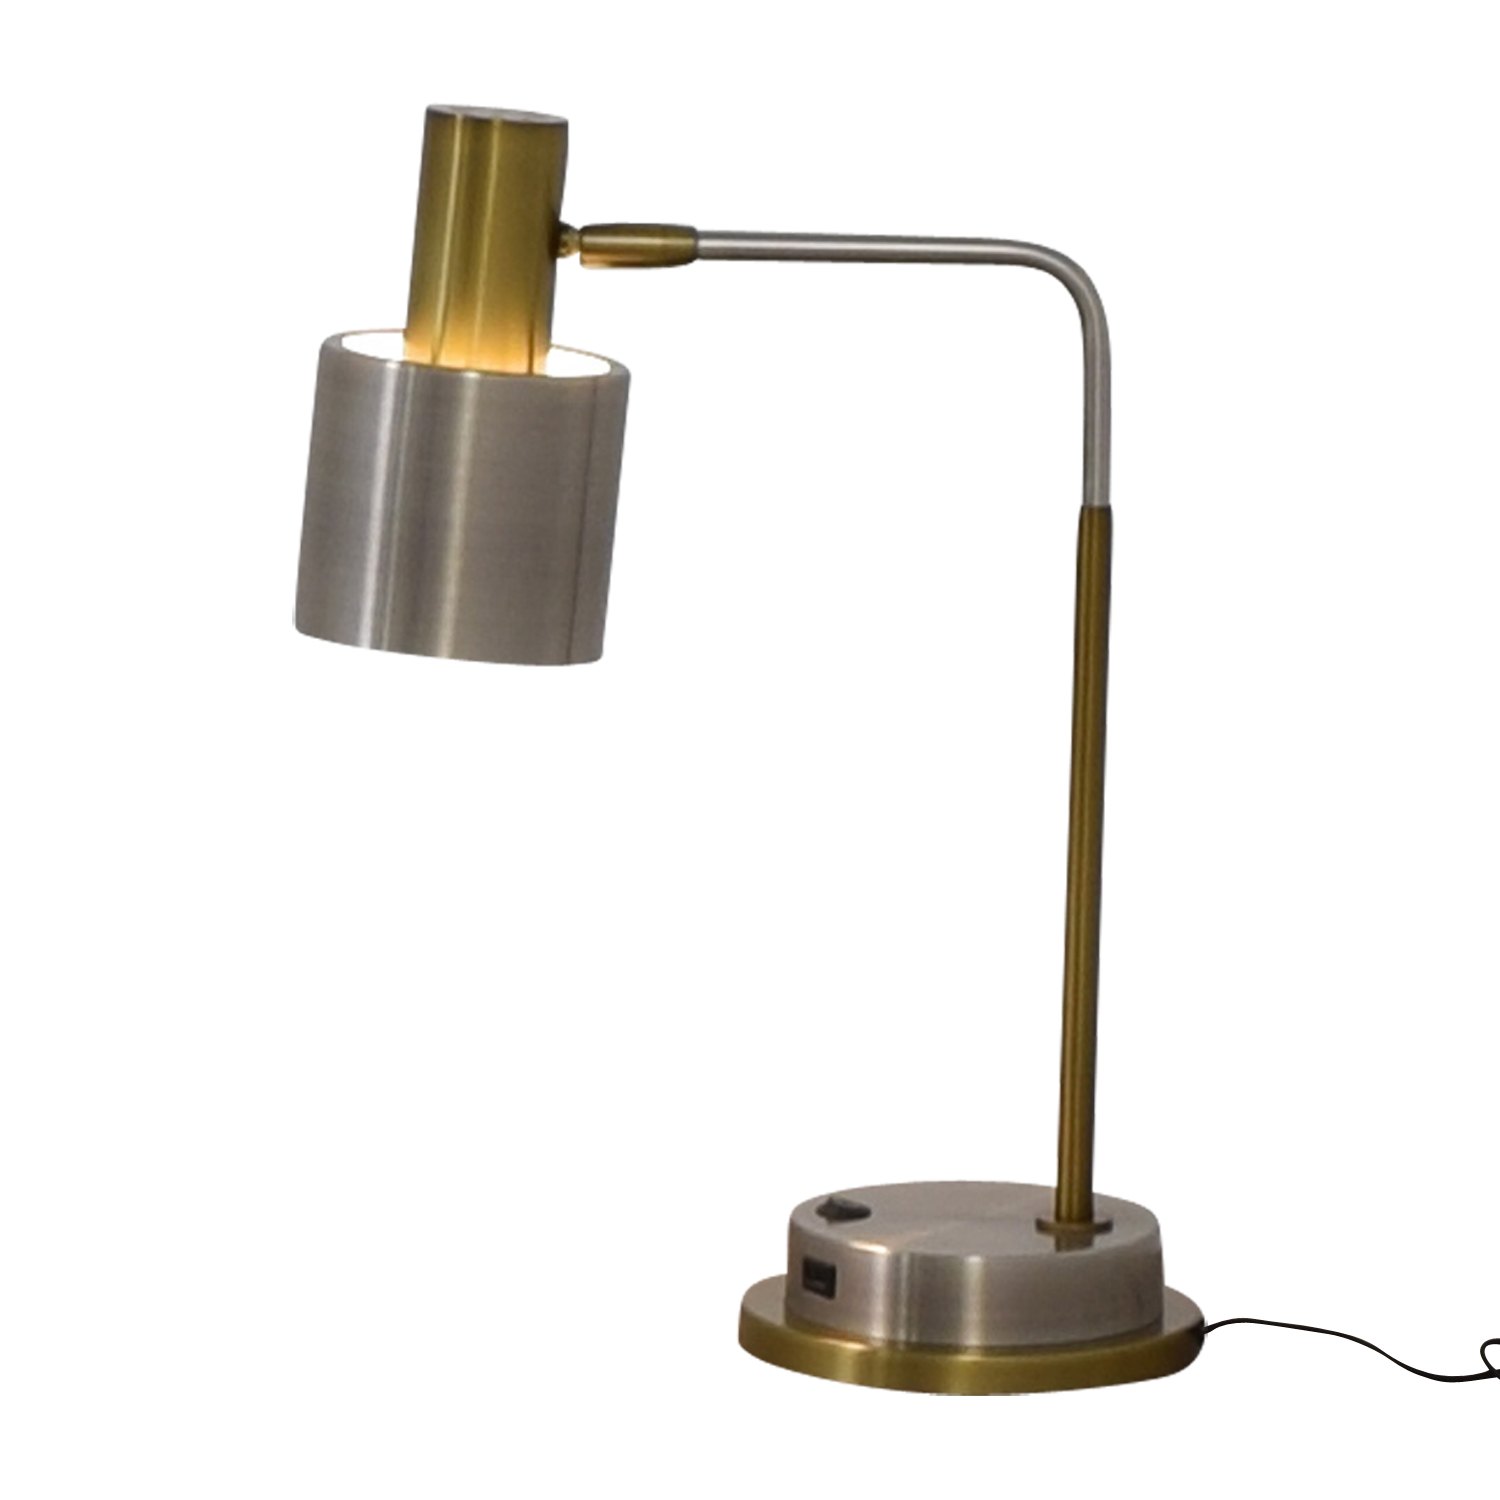 West Elm West Elm Metal Task Table Lamp with USB Port dimensions